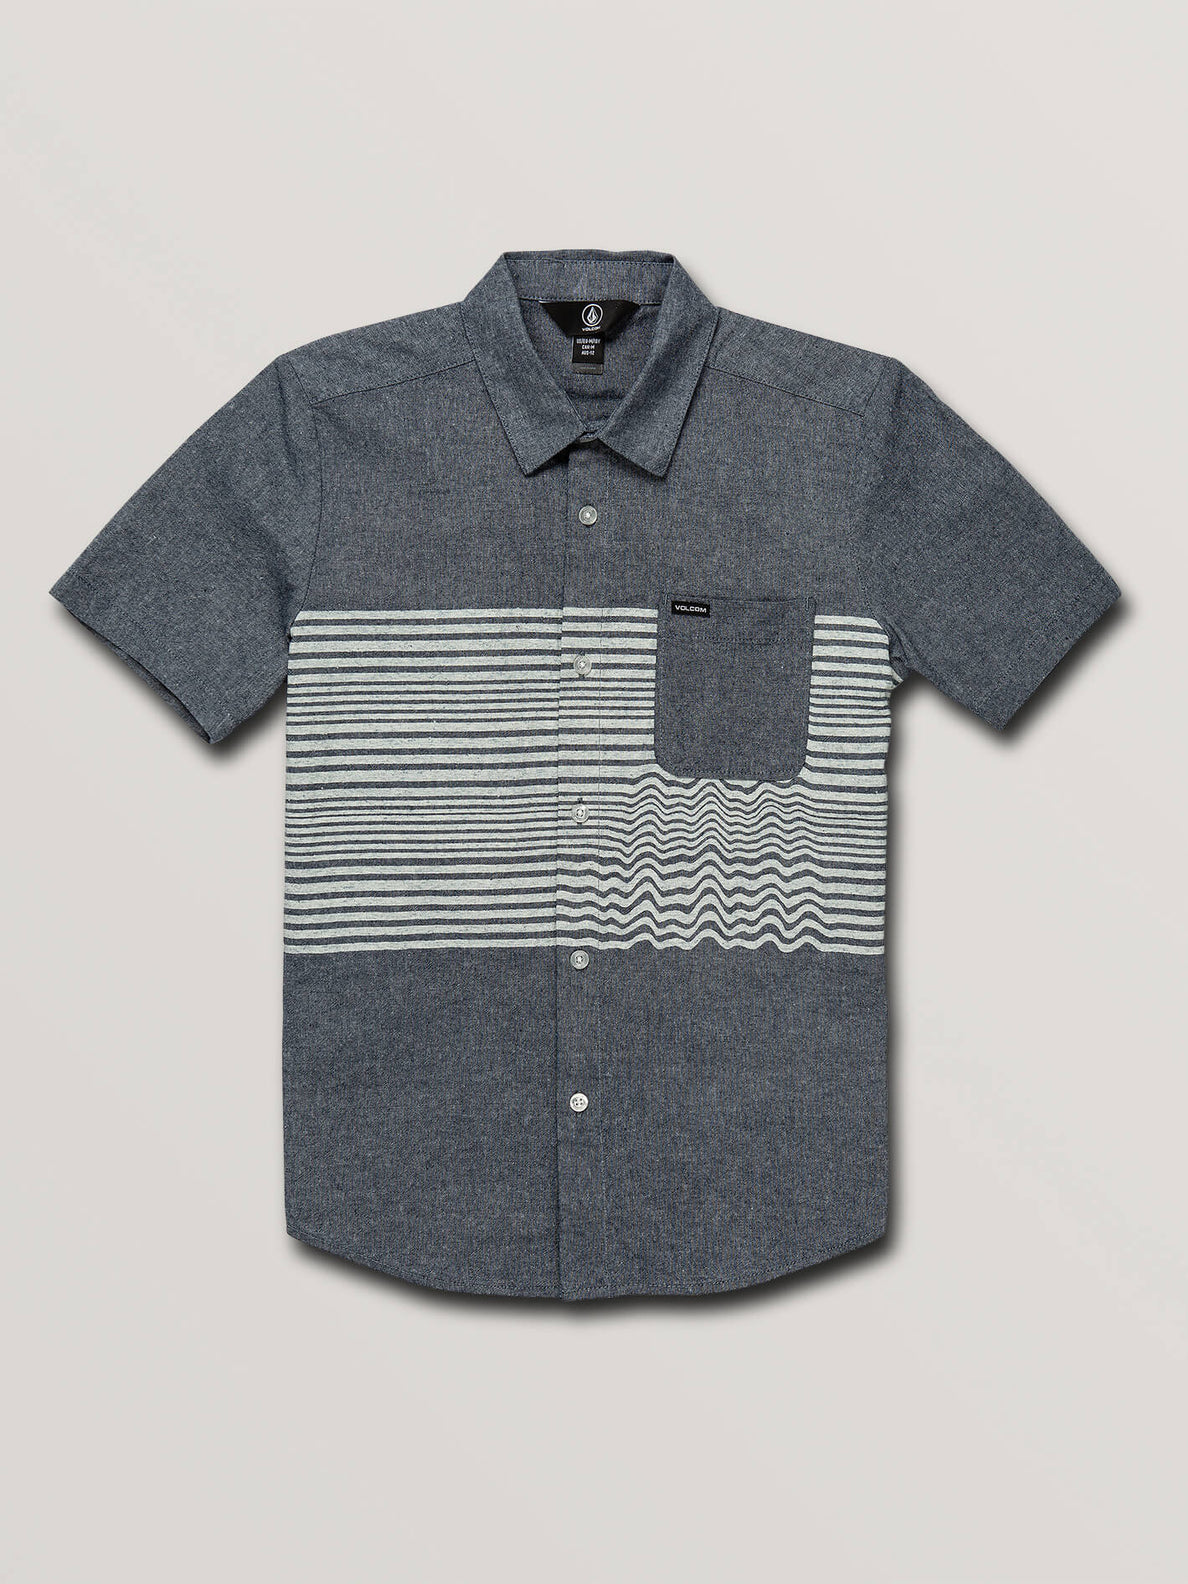 Big Boys Mag Vibes Short Sleeve Shirt In Indigo, Front View